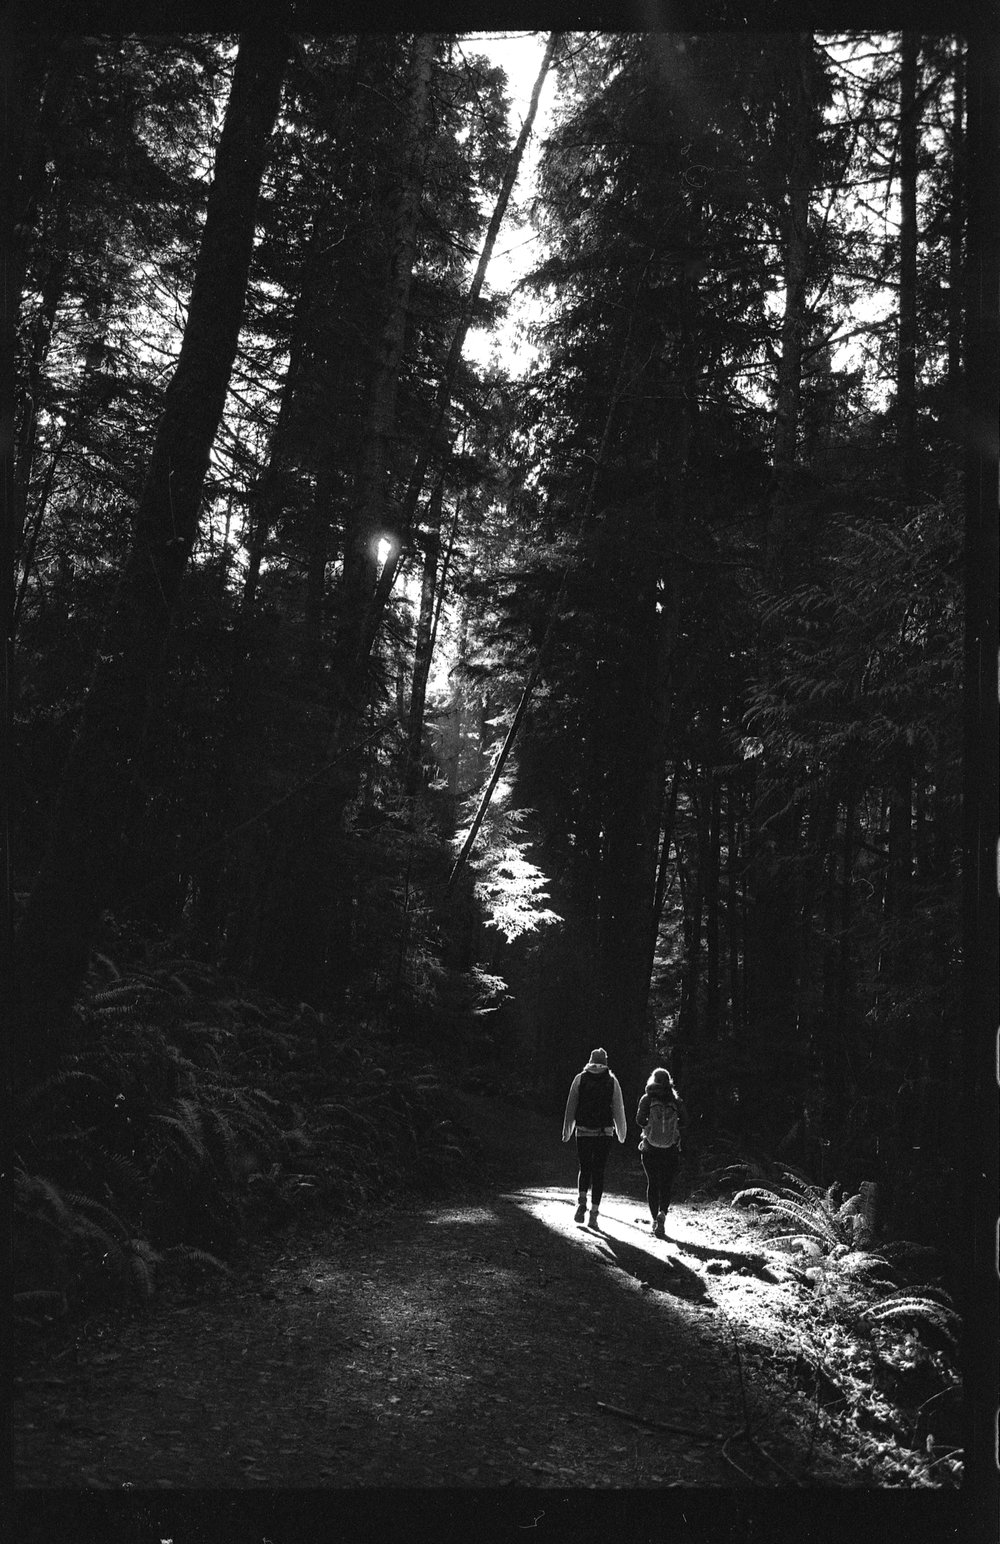 Sooke - Nikon F2 - Tri-x 400 (Pushed)